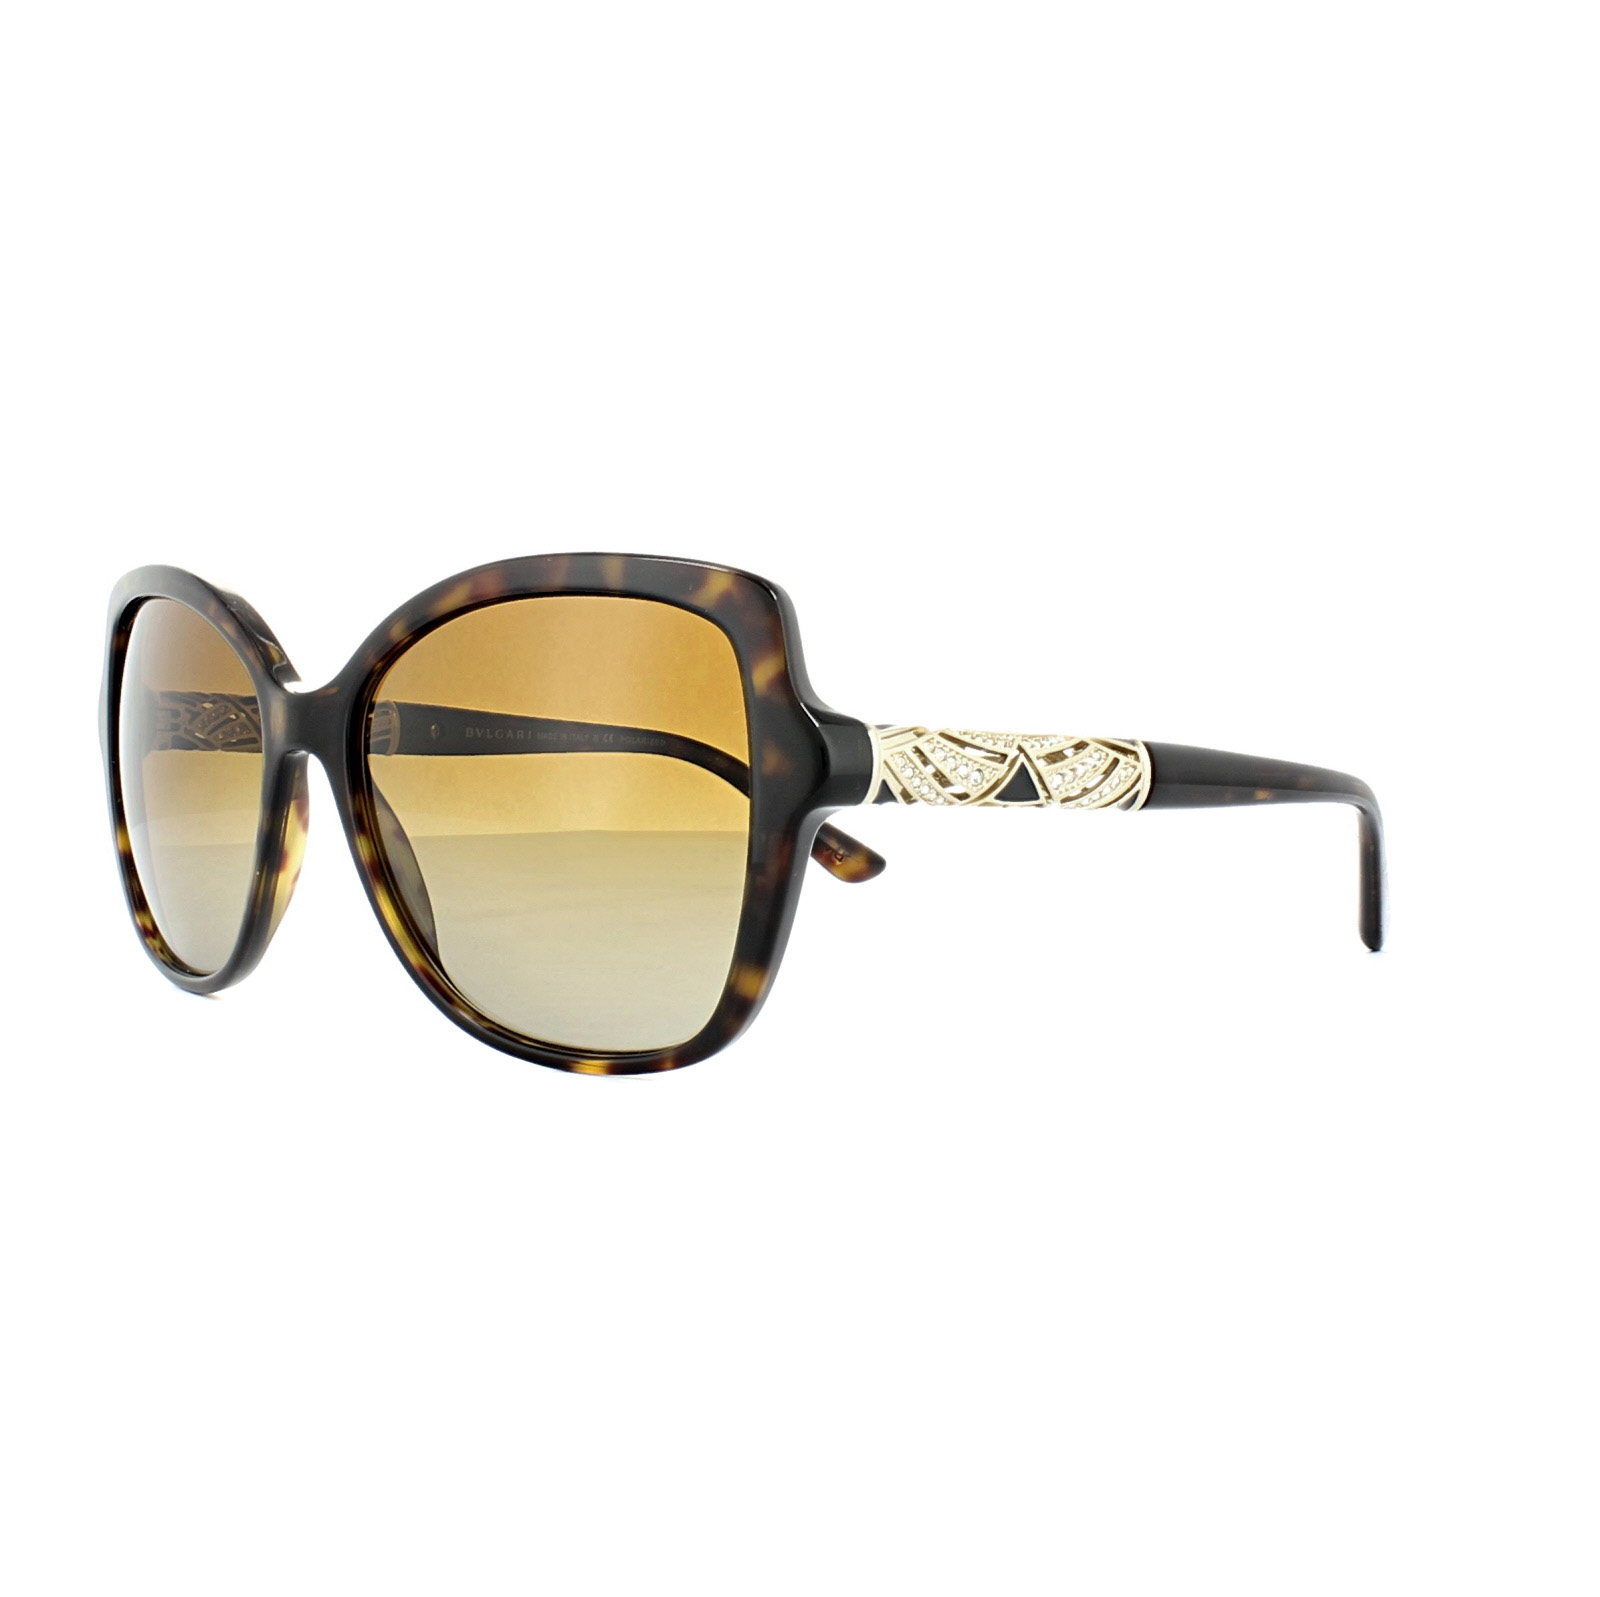 6a2355c291 Sentinel Bvlgari Sunglasses 8174B 504 T5 Dark Havana Brown Gradient  Polarized